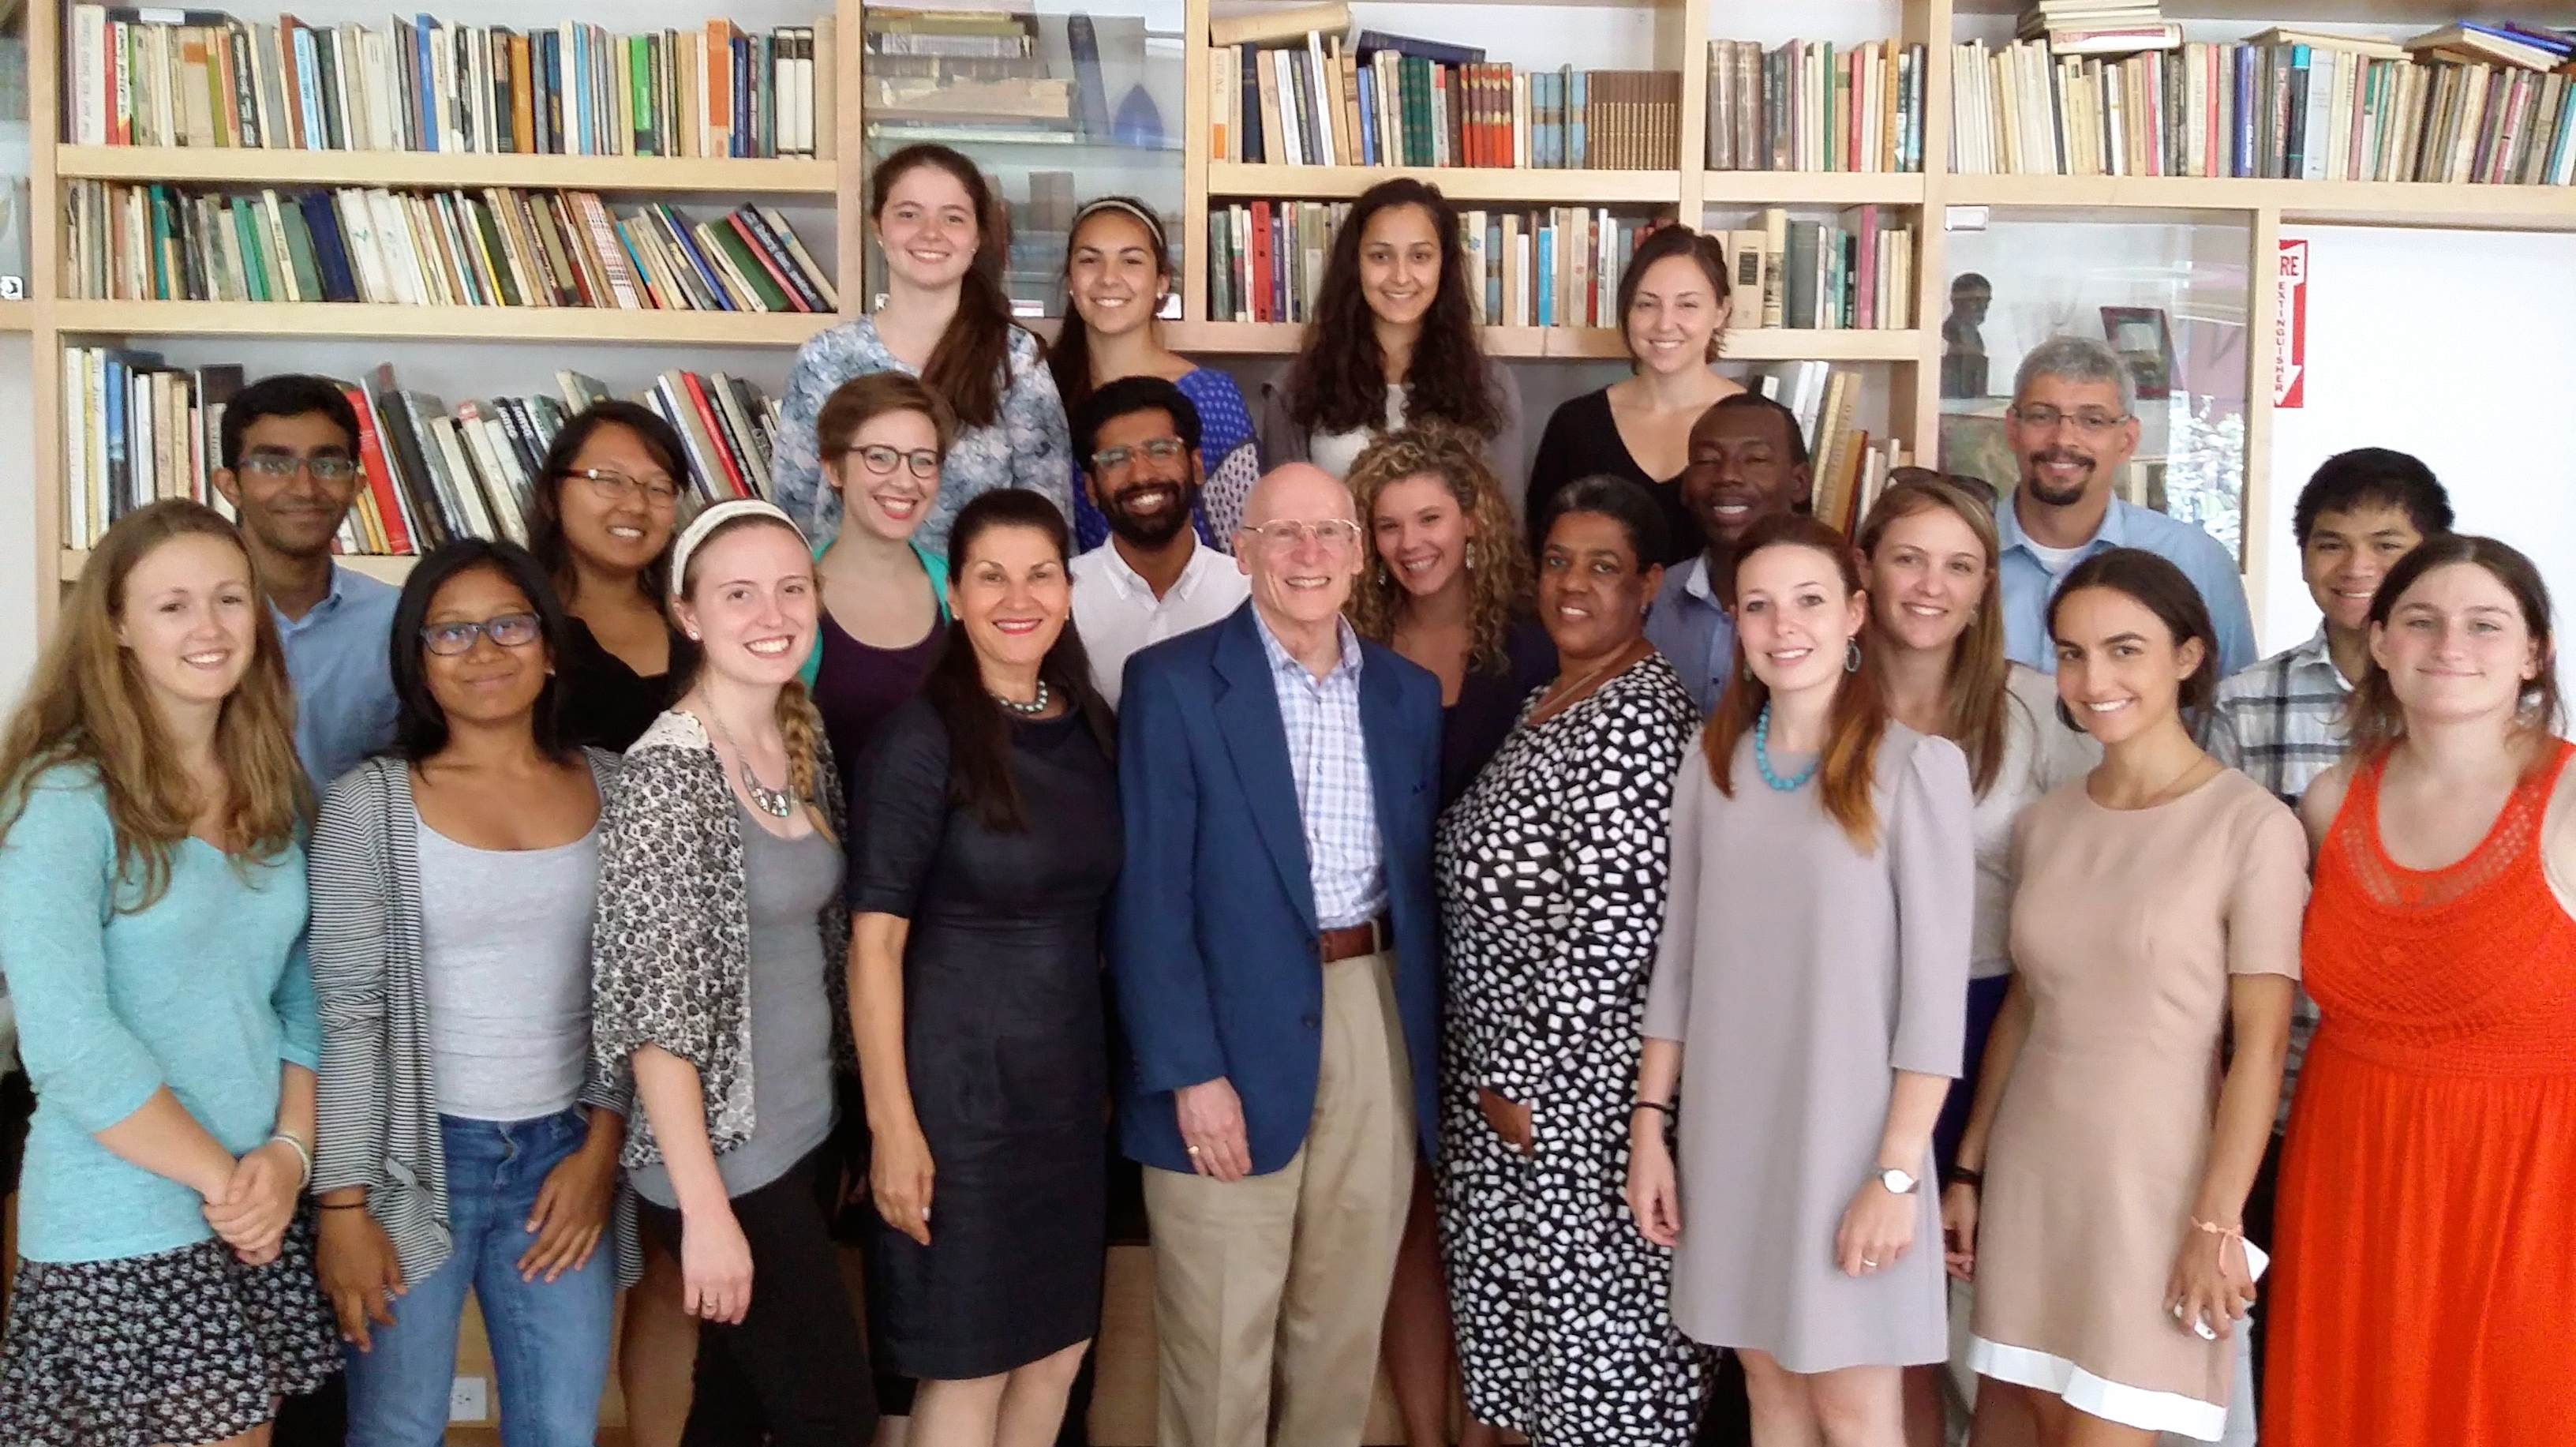 Charles H. Debrovner, M.D., President of Global Bioethics Initiative (center), Ana Lita Ph.D. and the participants of the summer school